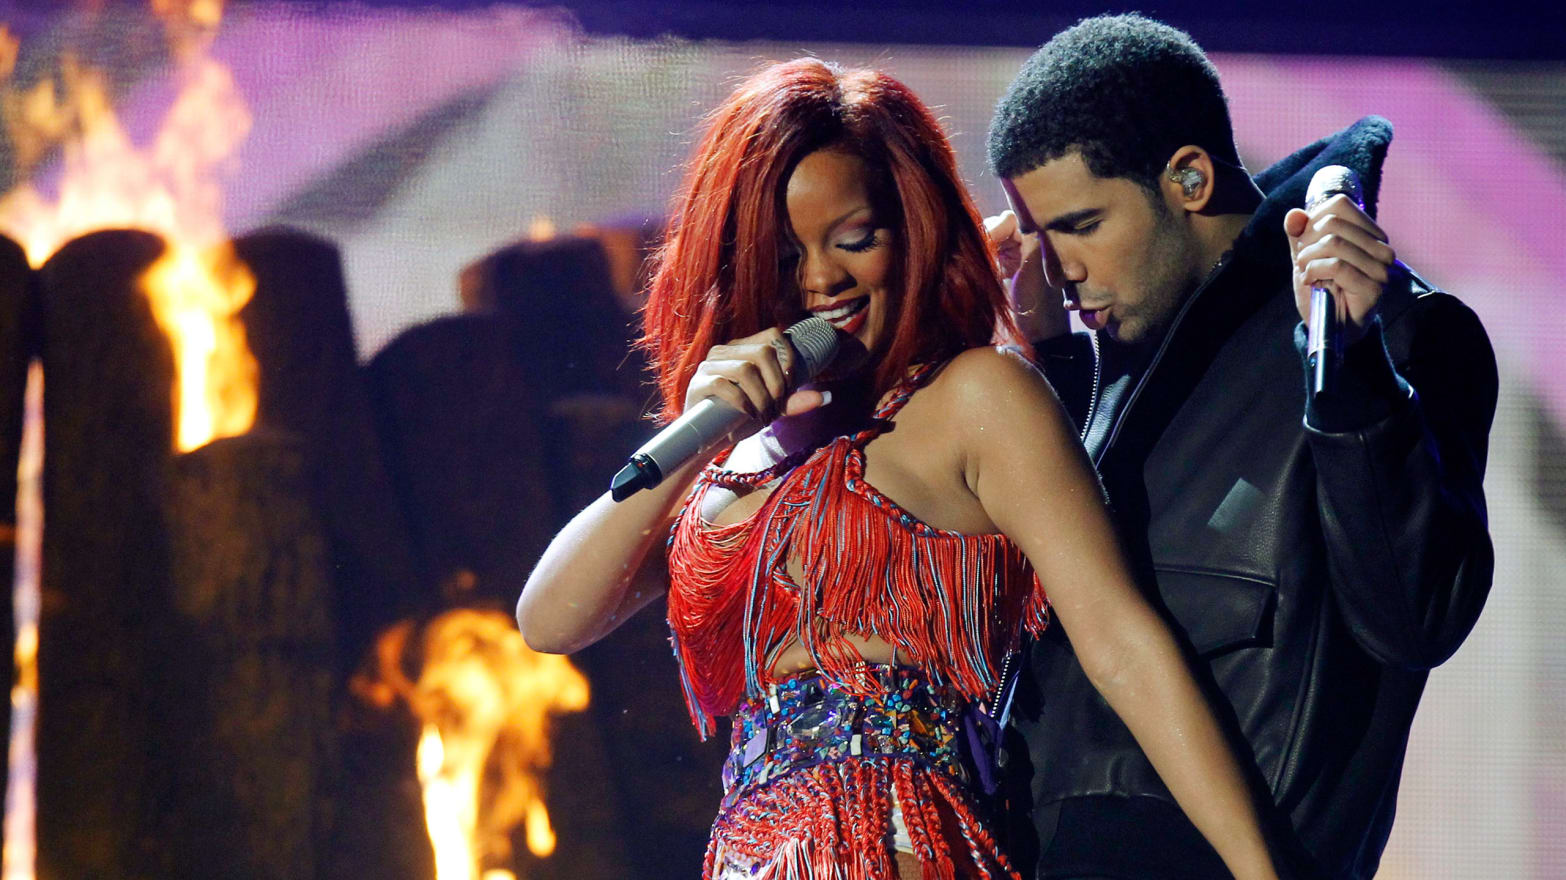 Er rihanna dating drake 2013